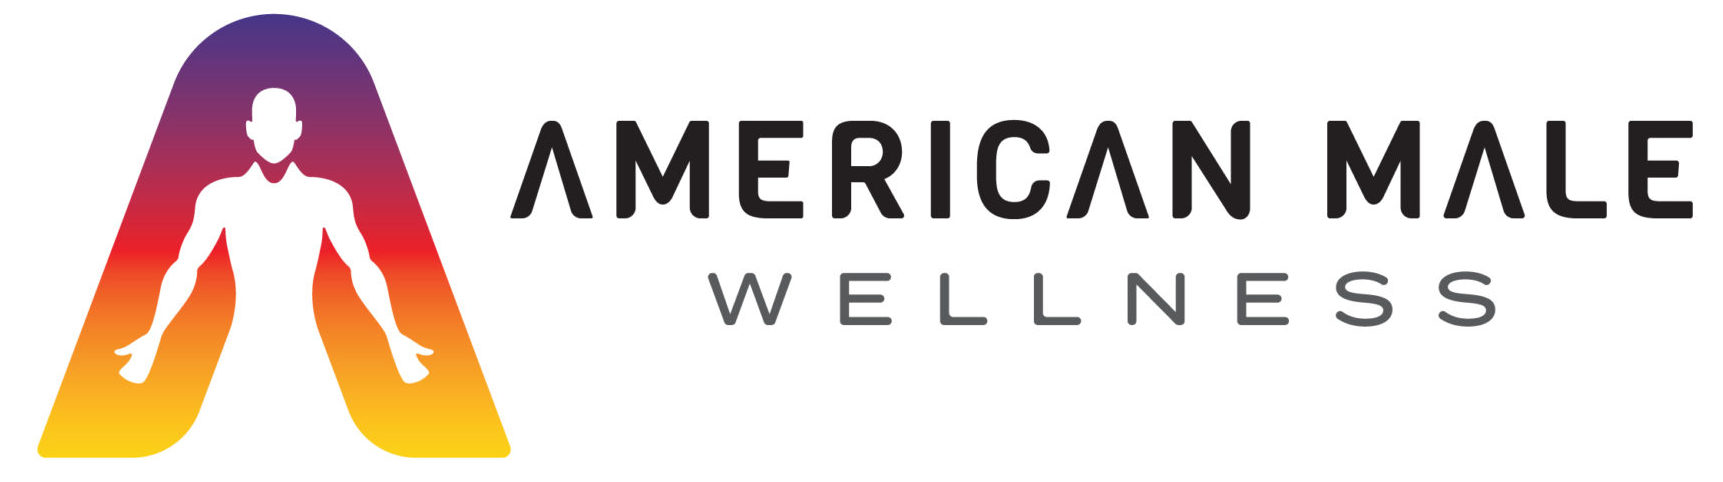 American Male Wellness Logo